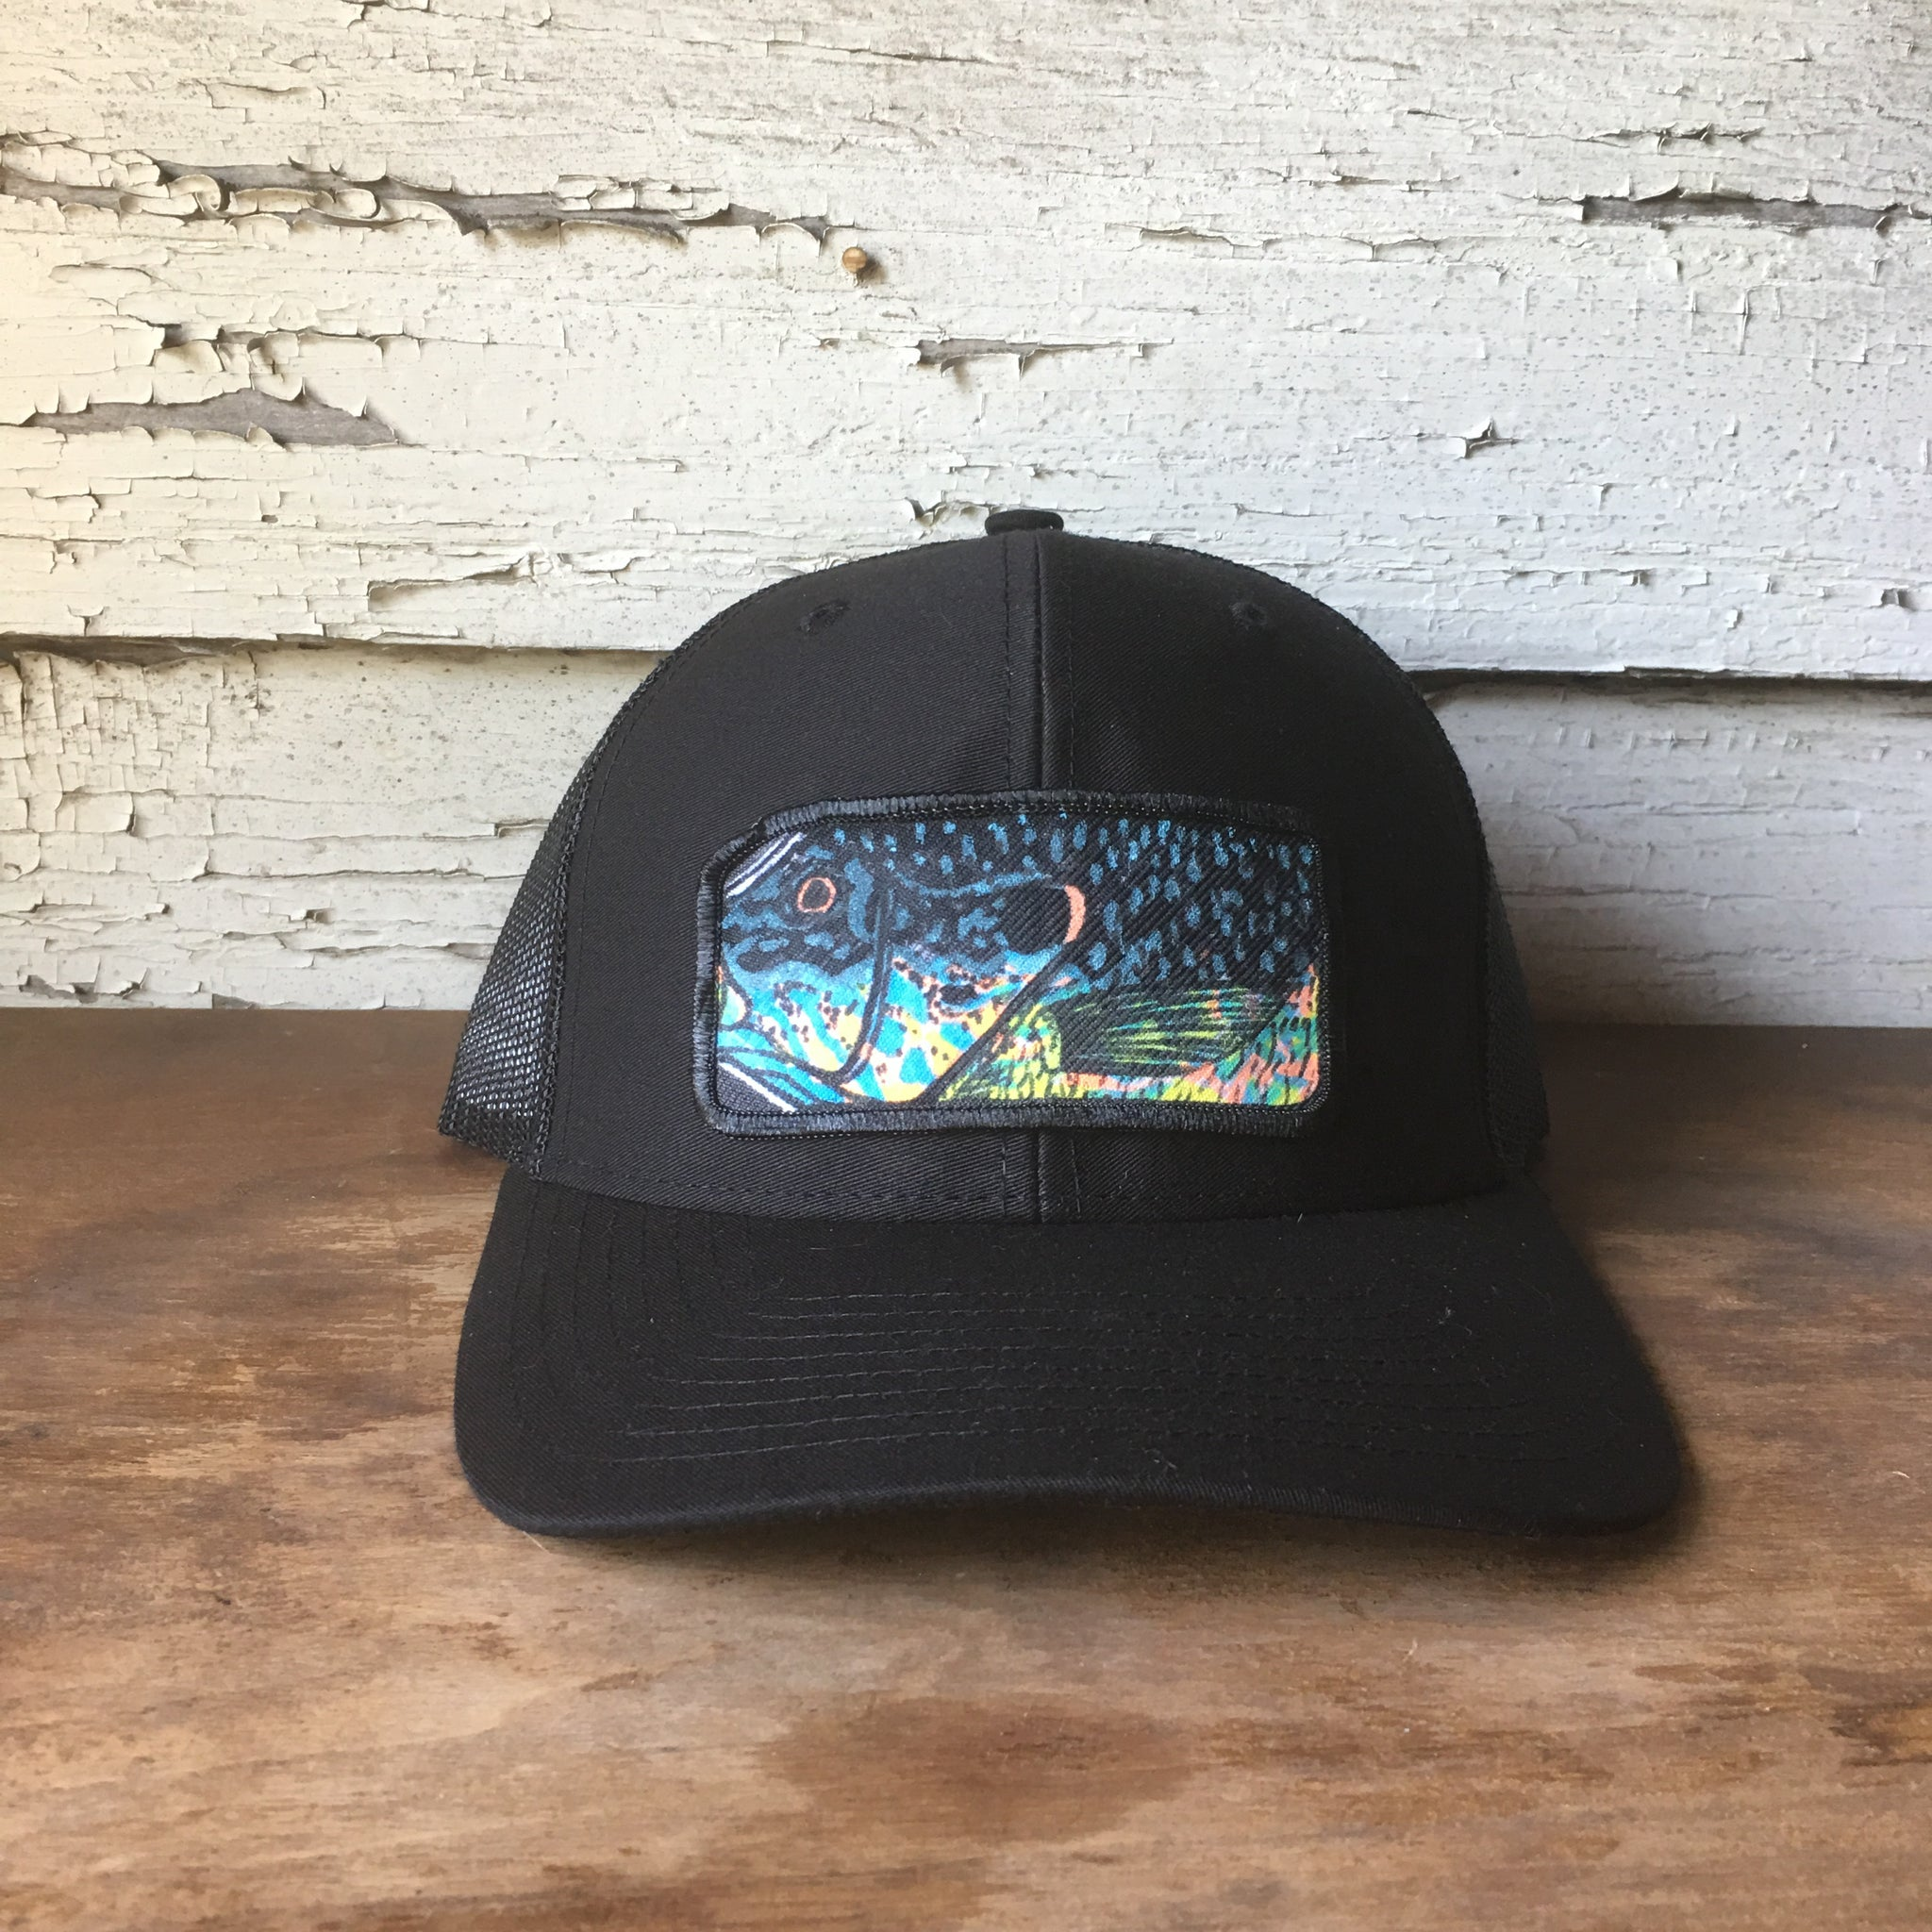 Original Hand Drawn Pumkinseed Fish Hat